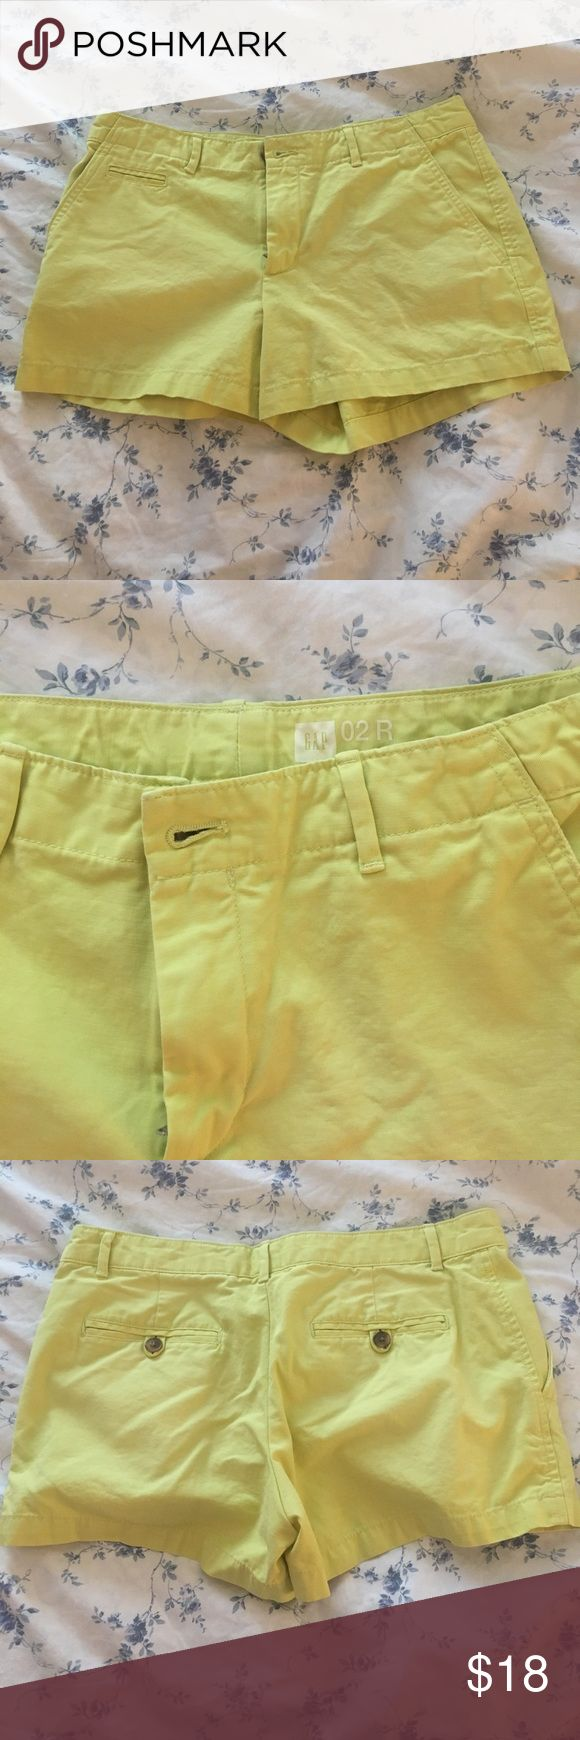 """GAP Lime Green Shorts 4"""" inseam, super cute--gently worn and still in great condition! GAP Shorts"""